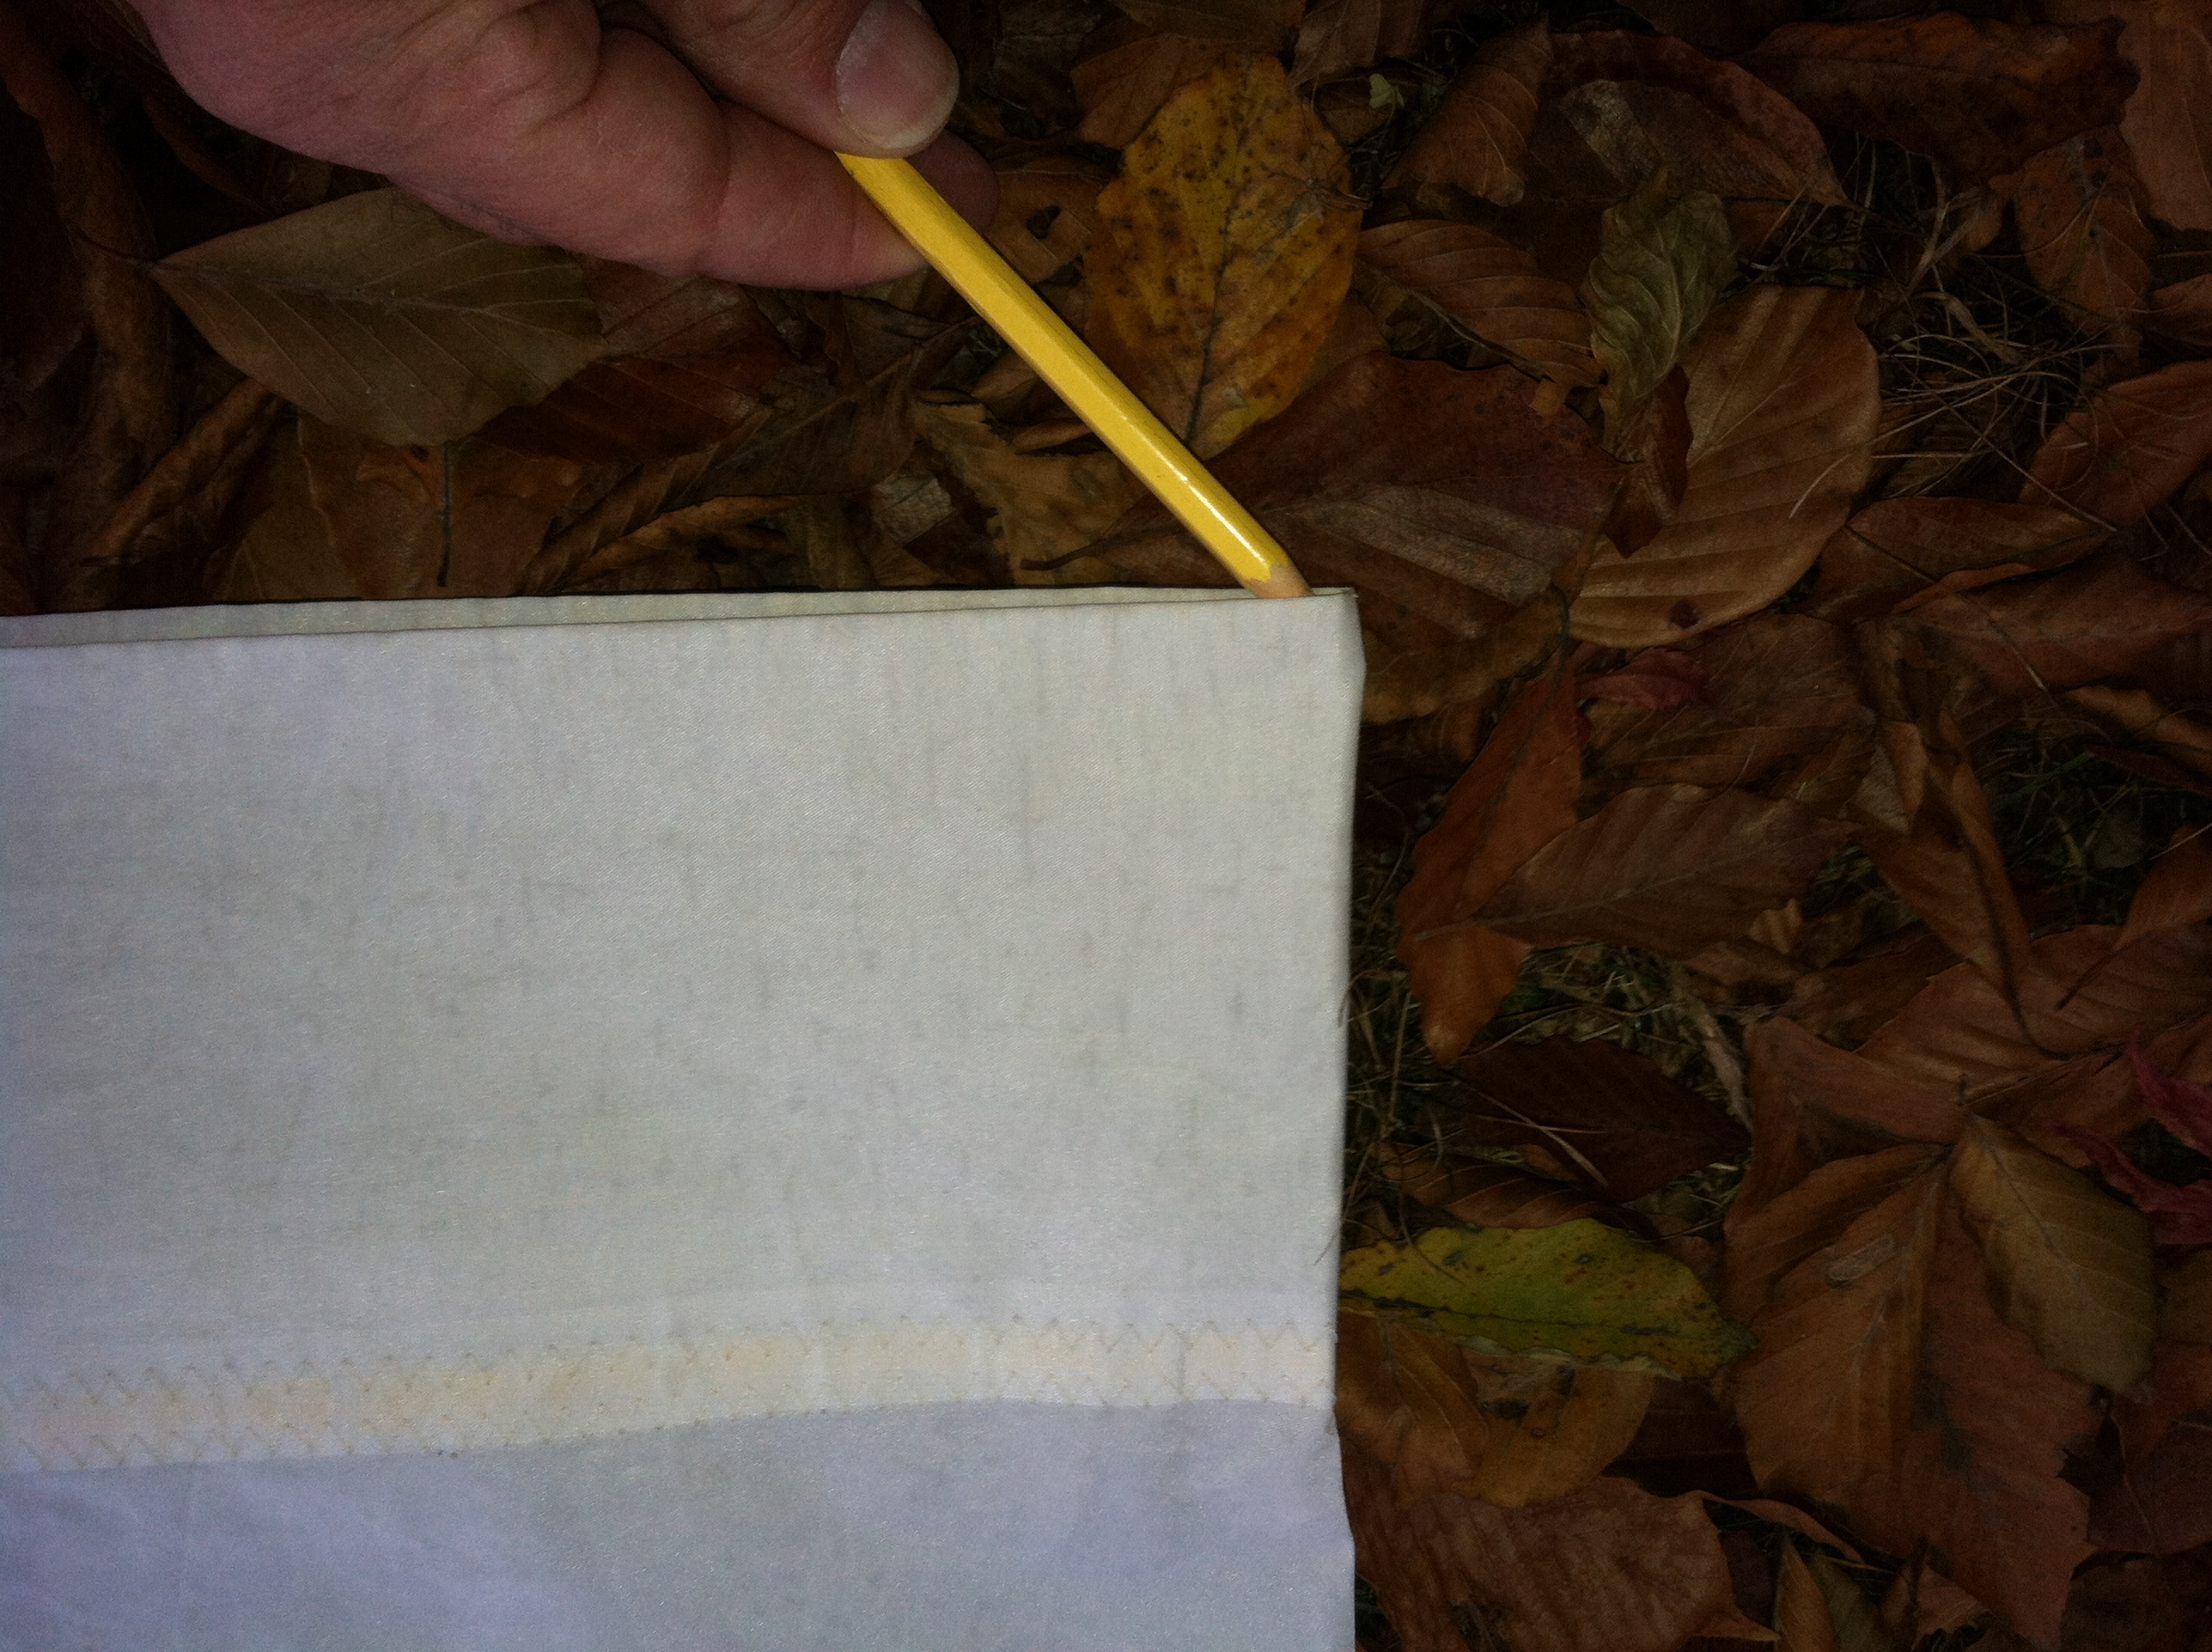 Make a pencil mark on the sail under the fold.